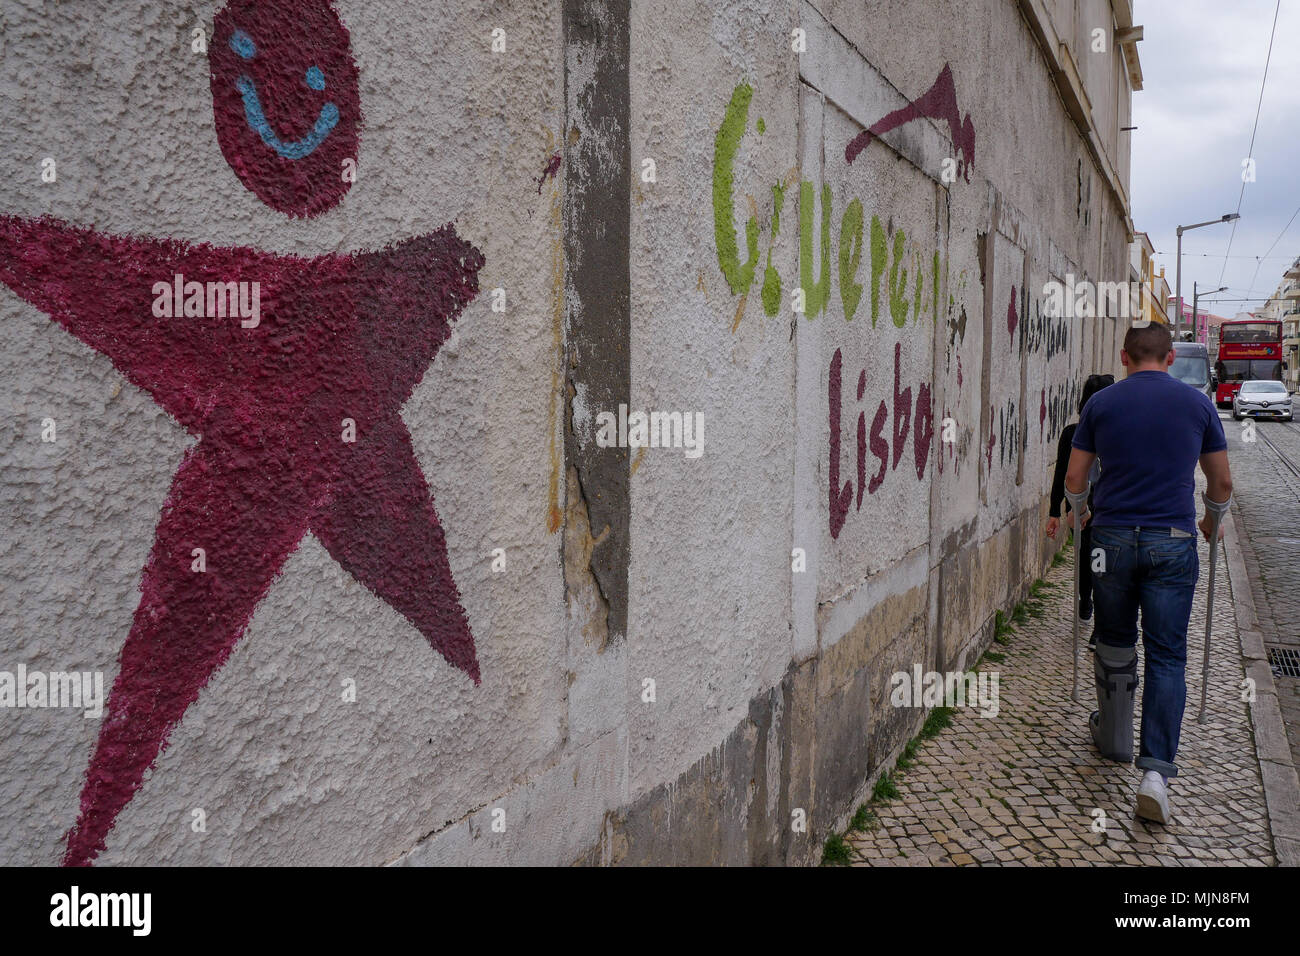 Street view with colored grffiris, Belem district, Lisbon, Portugal - Stock Image